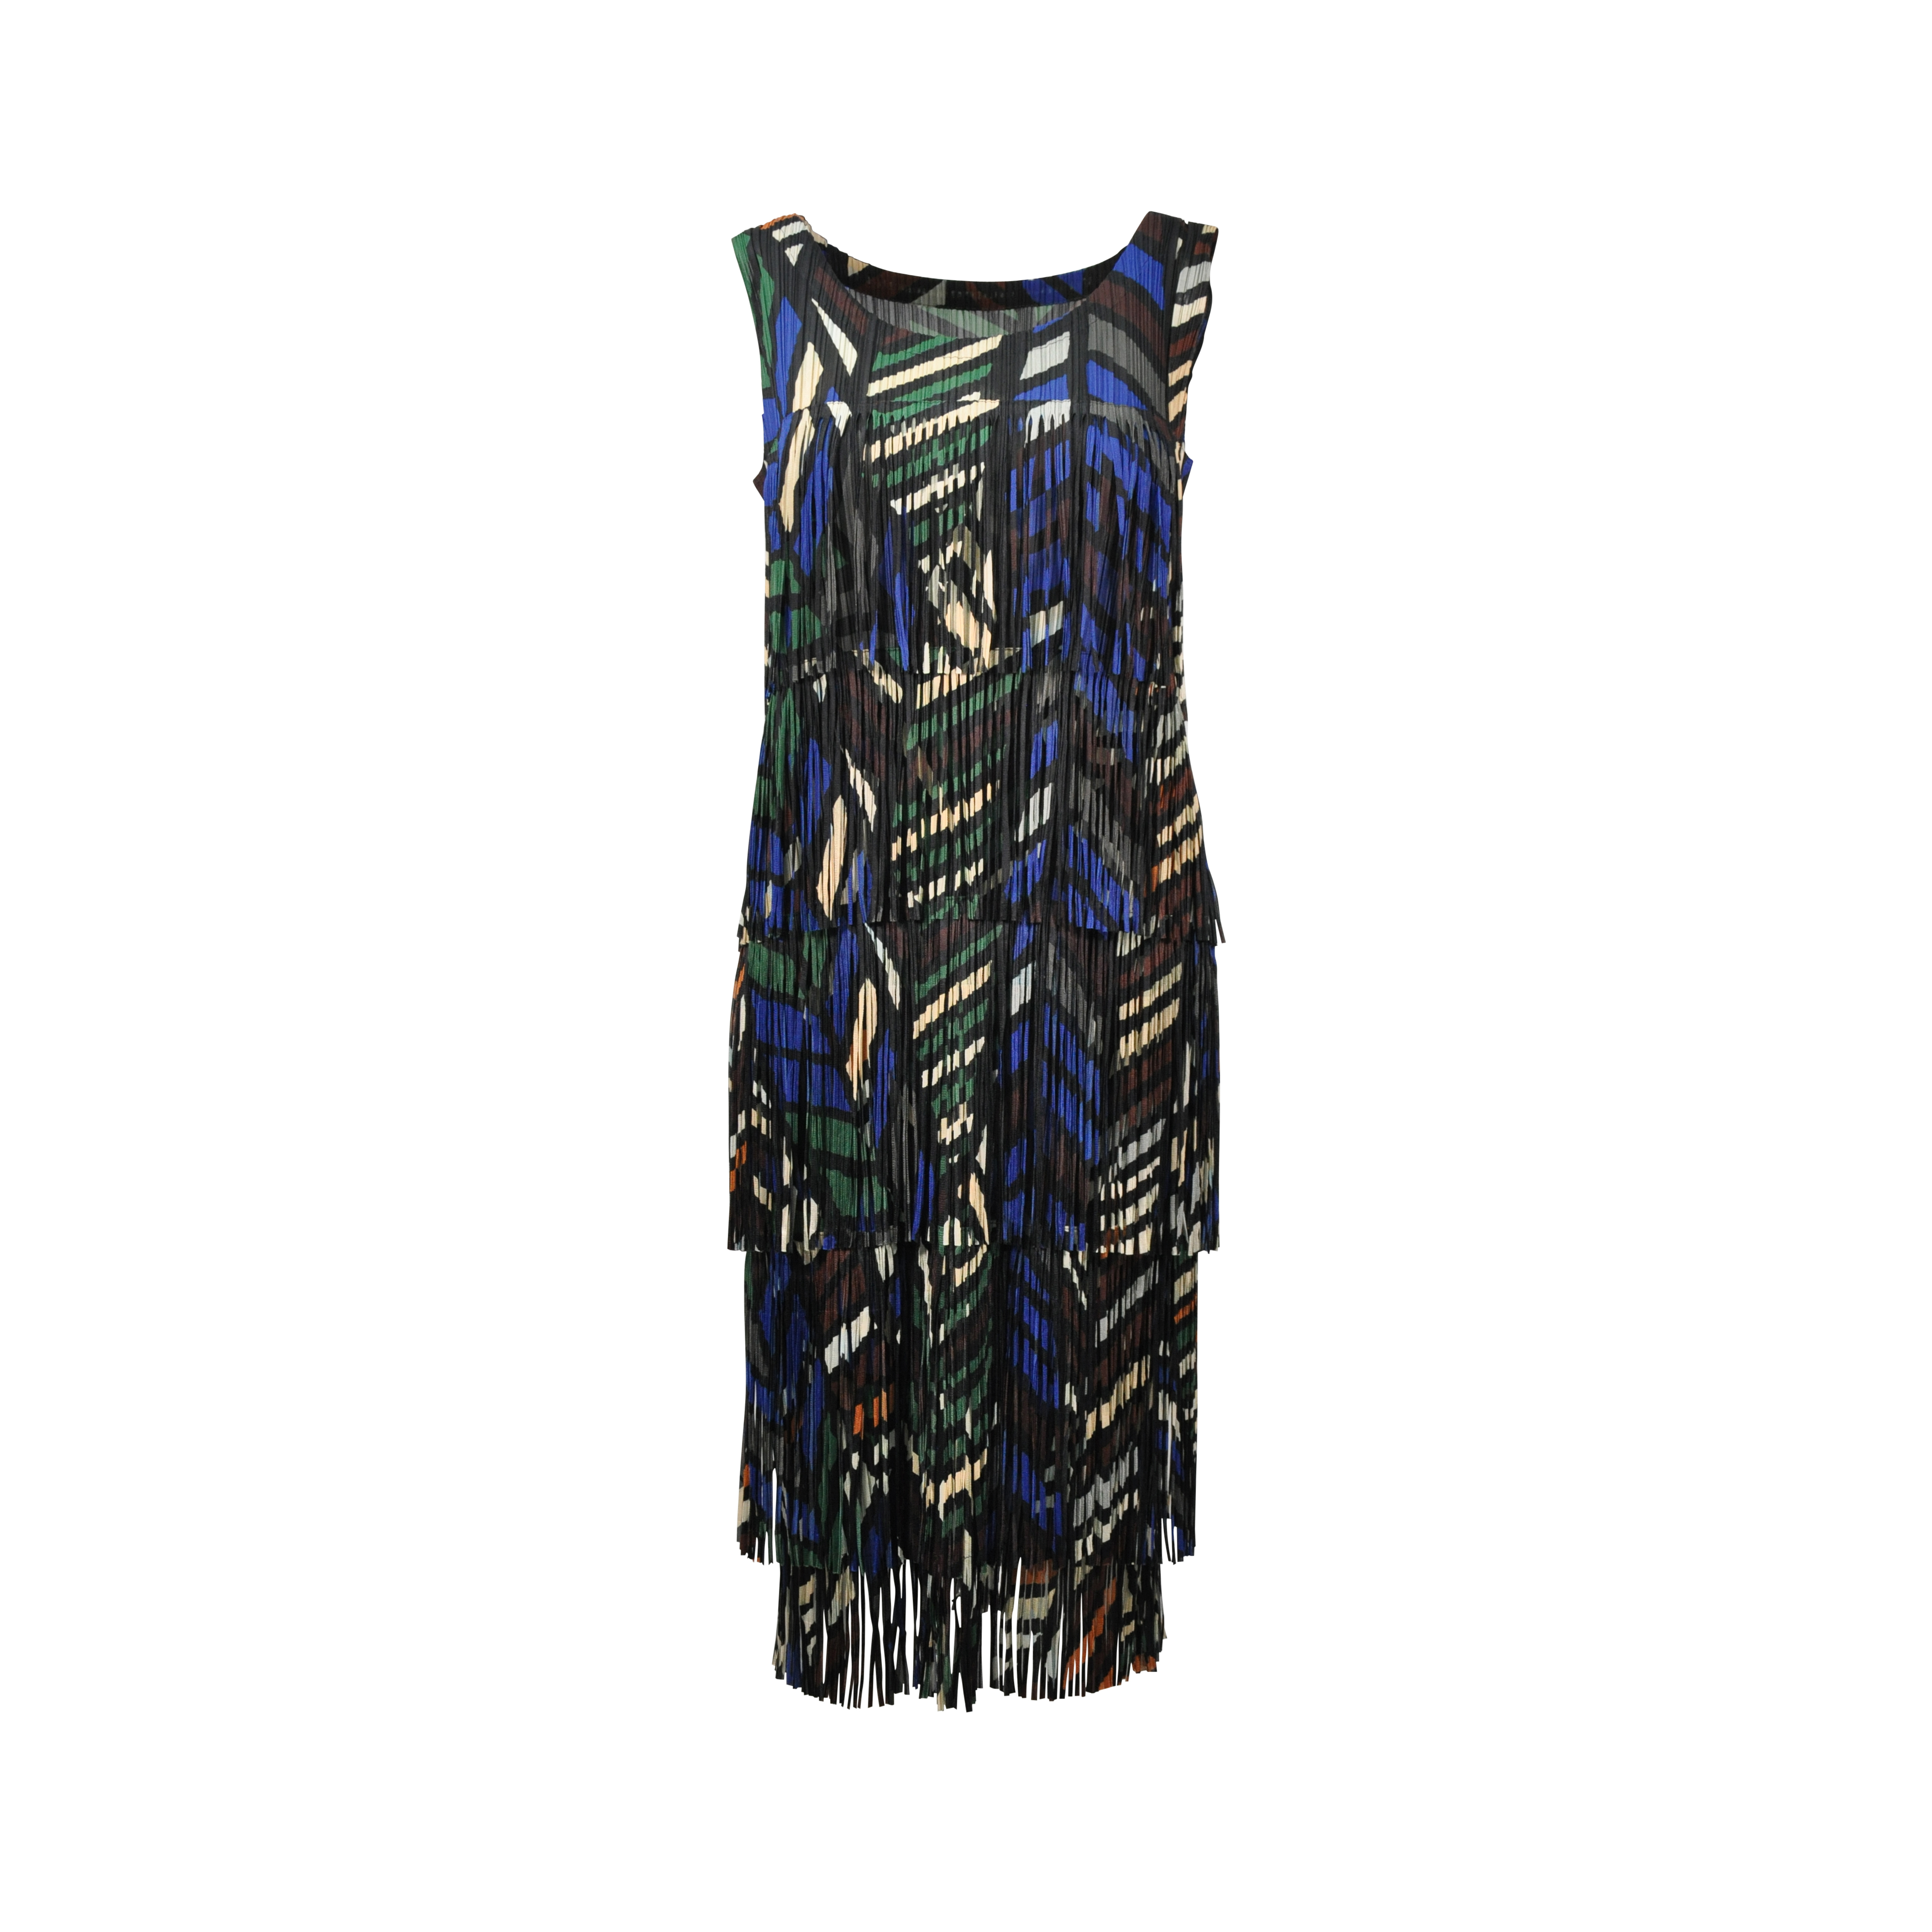 76d14954ed Authentic Second Hand Issey Miyake Pleats Please Dress (PSS-080-00134)